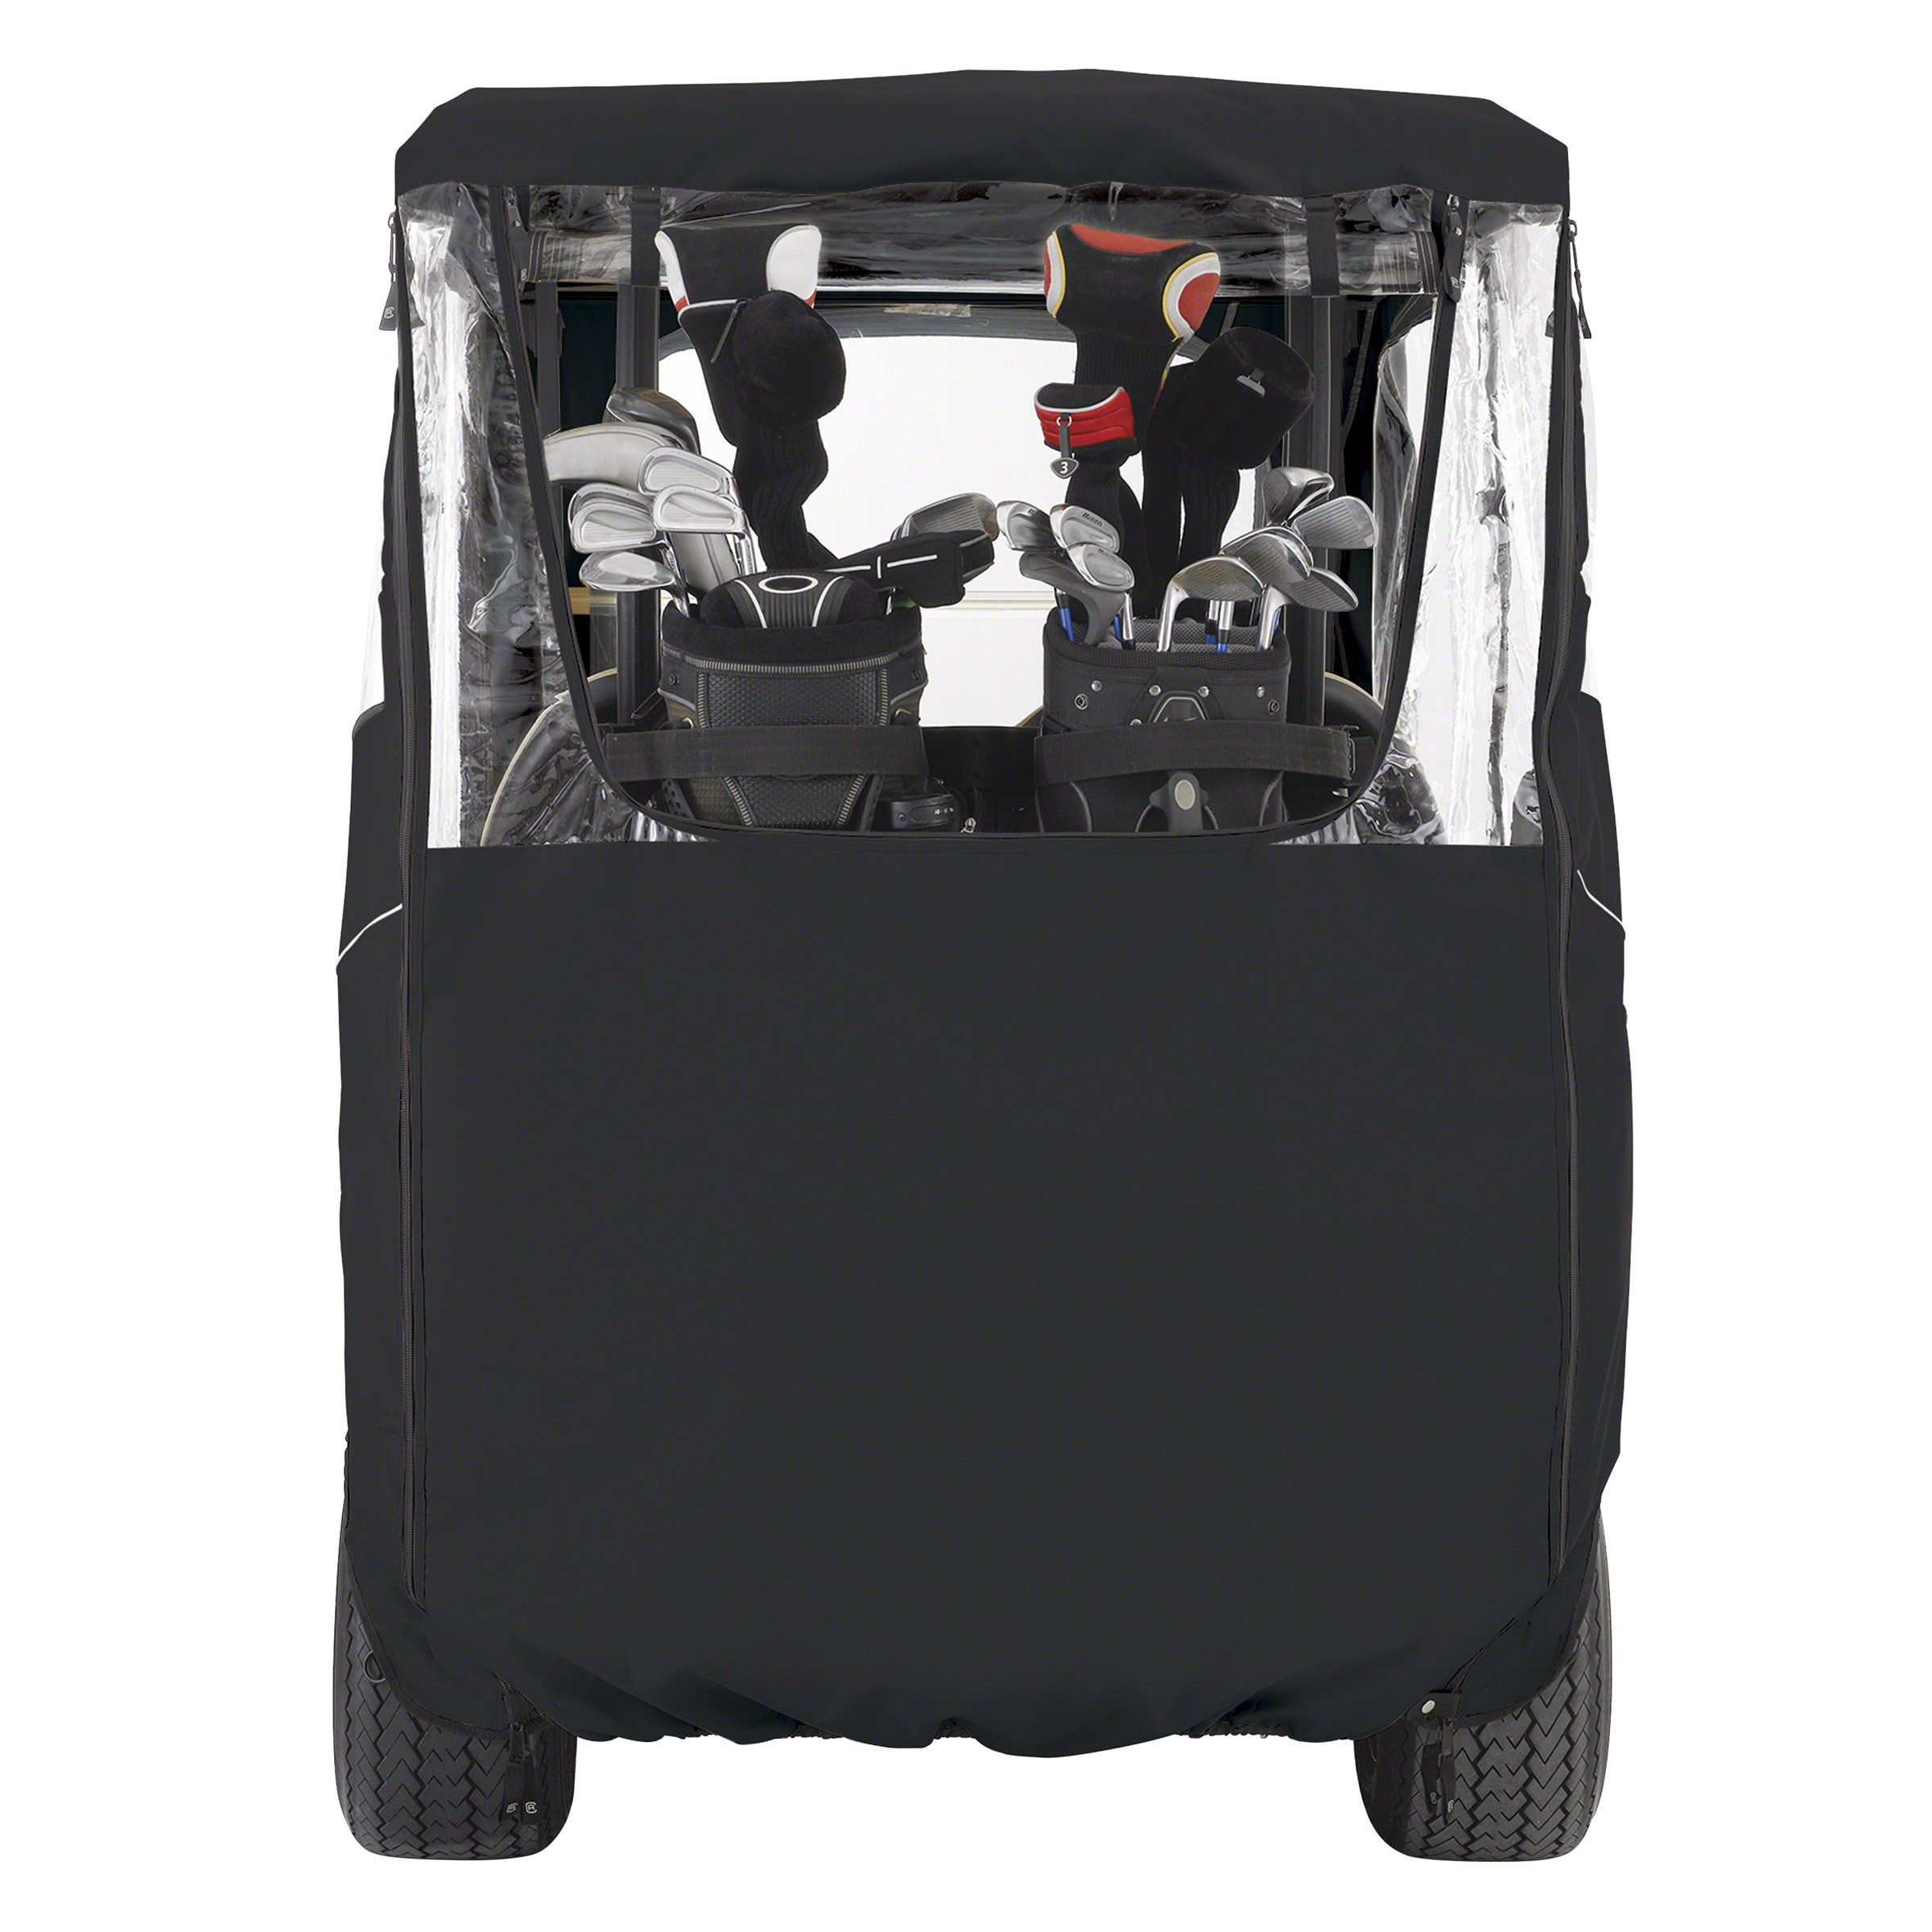 Classic Accessories Fairway Golf Cart Deluxe Enclosure, Black, Short Roof by Classic Accessories (Image #7)